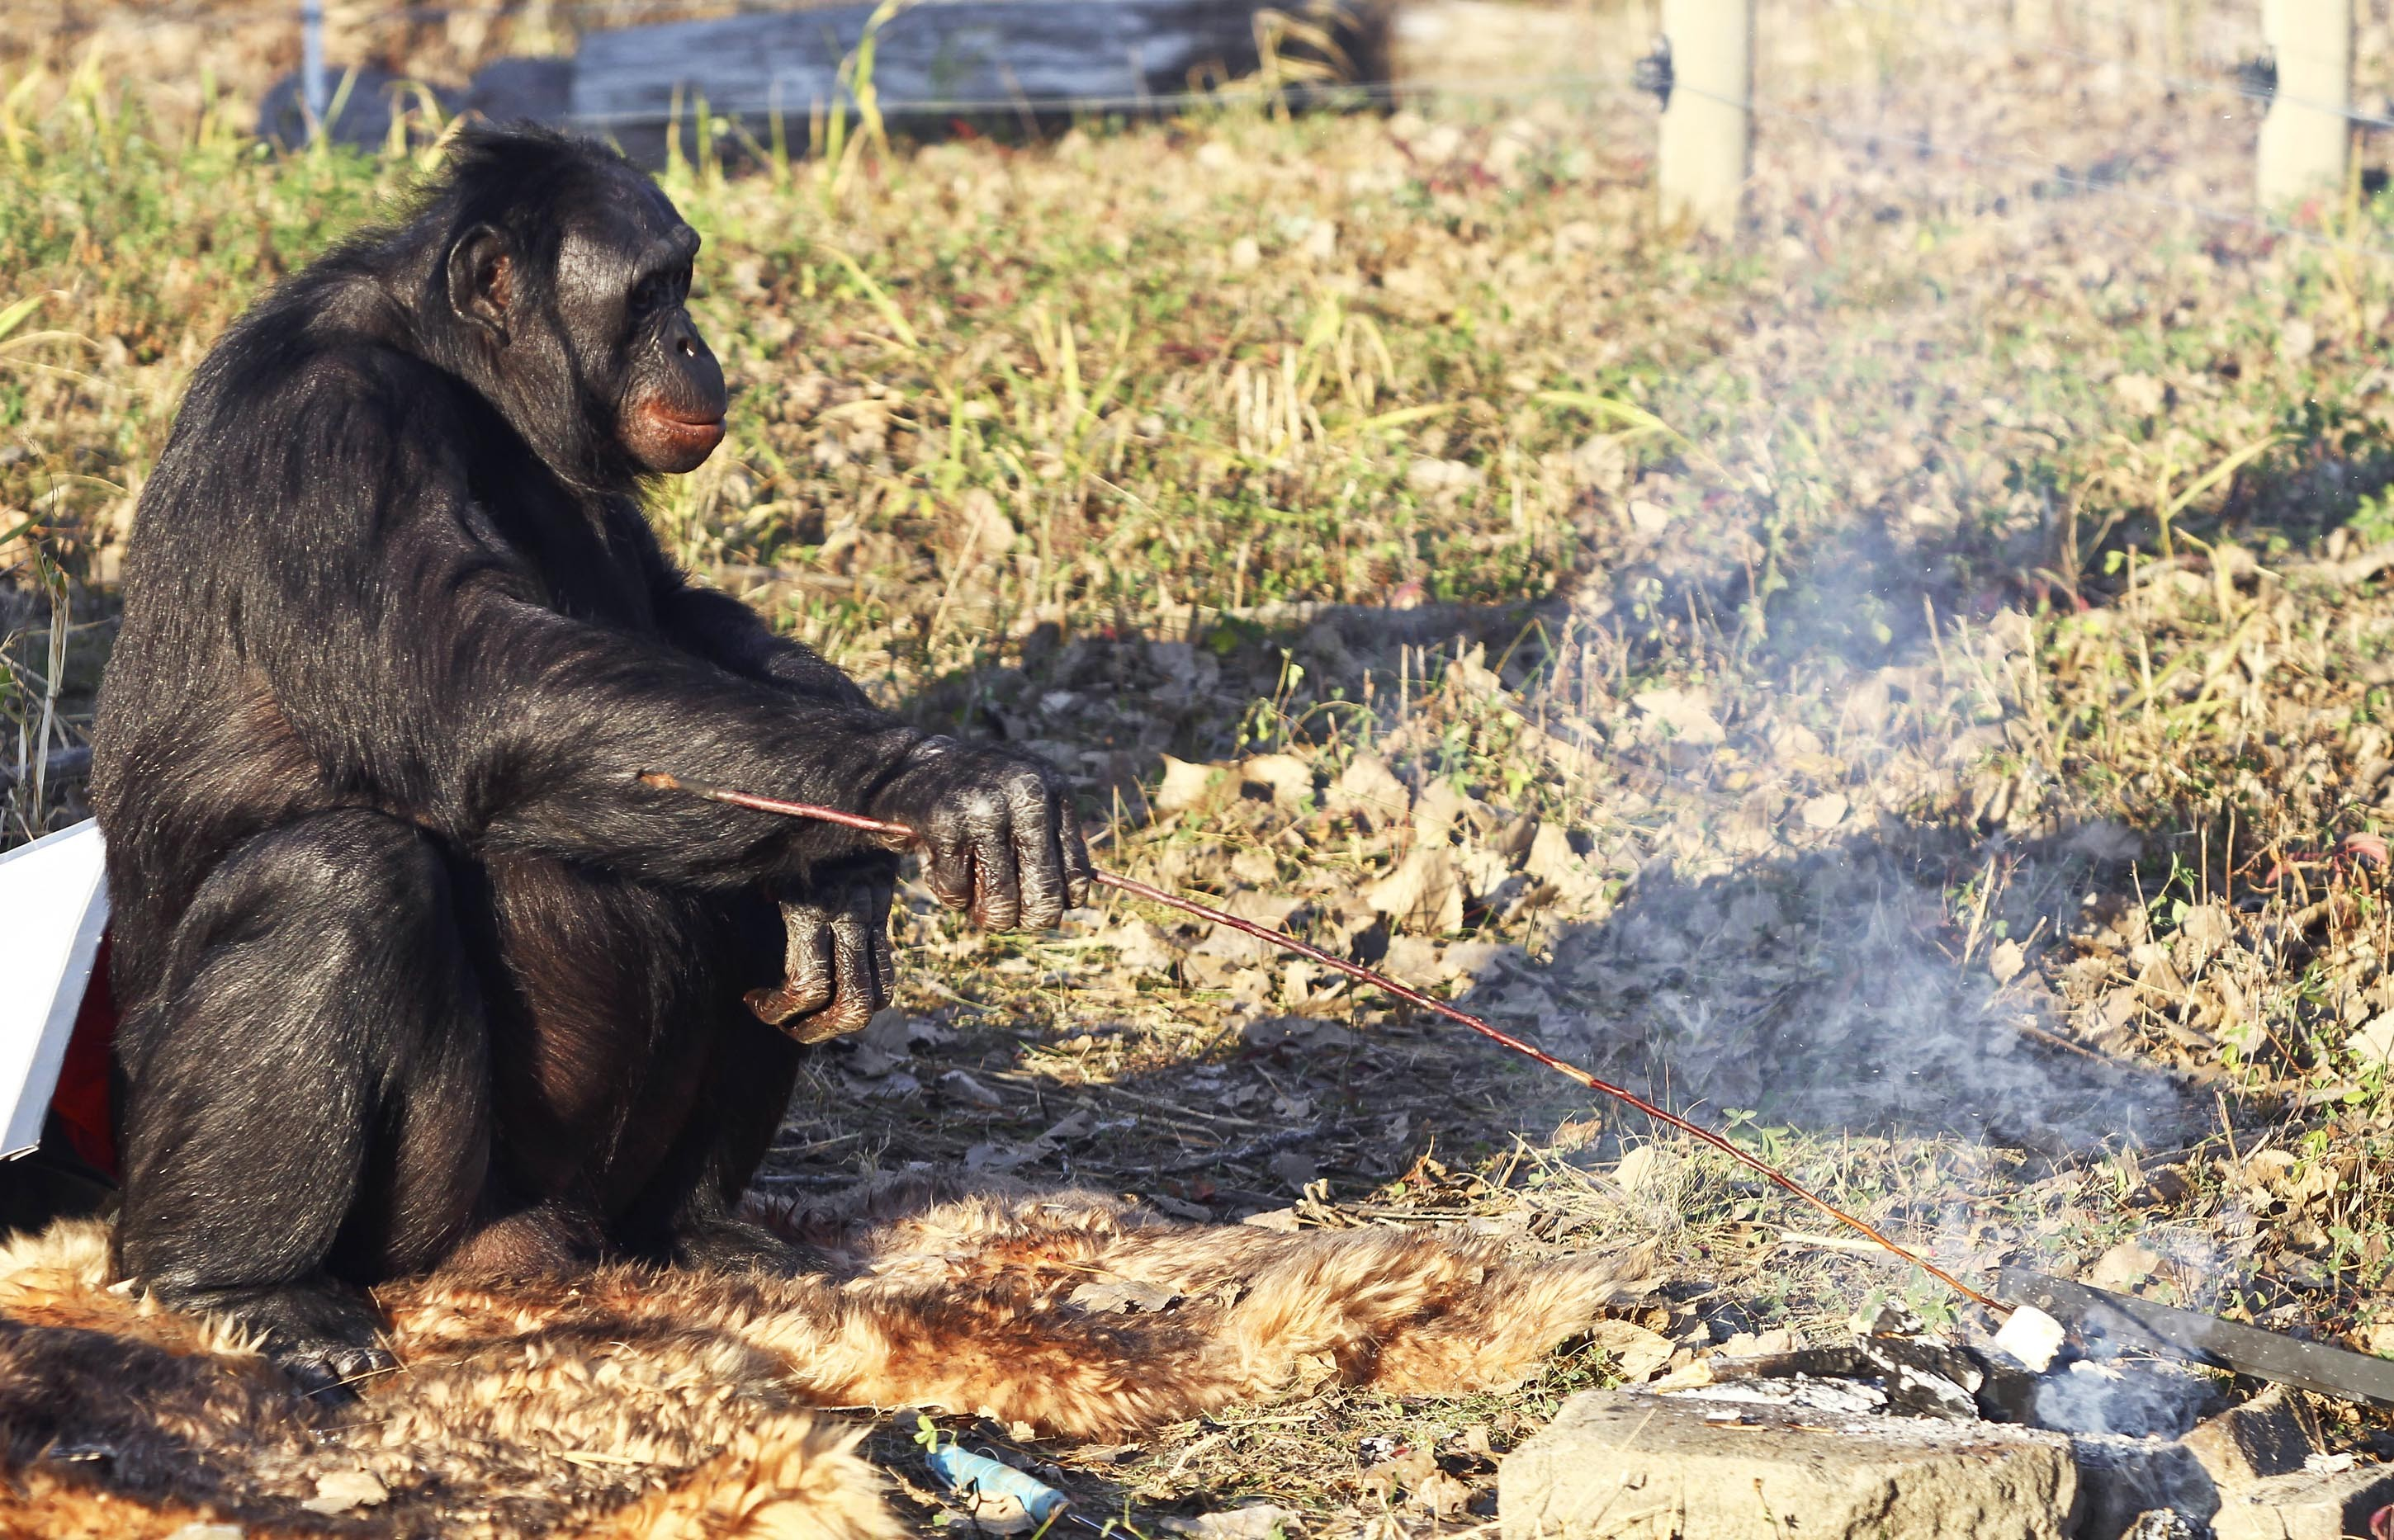 BONOBO CHIMPANZEE KANZI MAKES CAMPFIRES